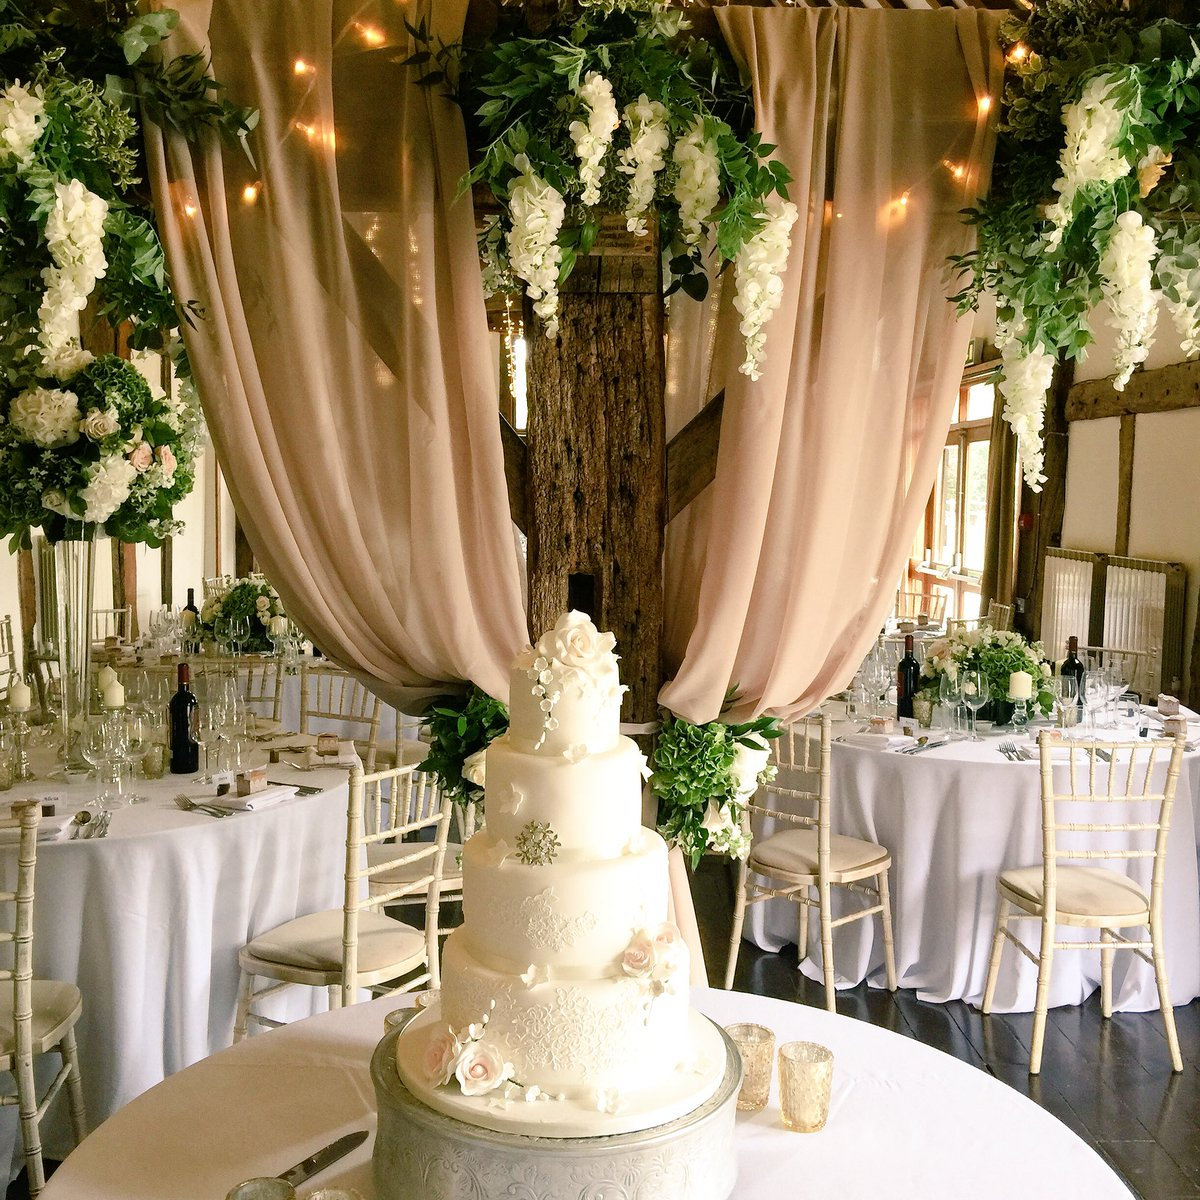 Love the sheer drapes behind this gorgeous cake! #weddingcake #weddingflowers #weddingvenue #weddingflowers #surreywedding #weddingvibe